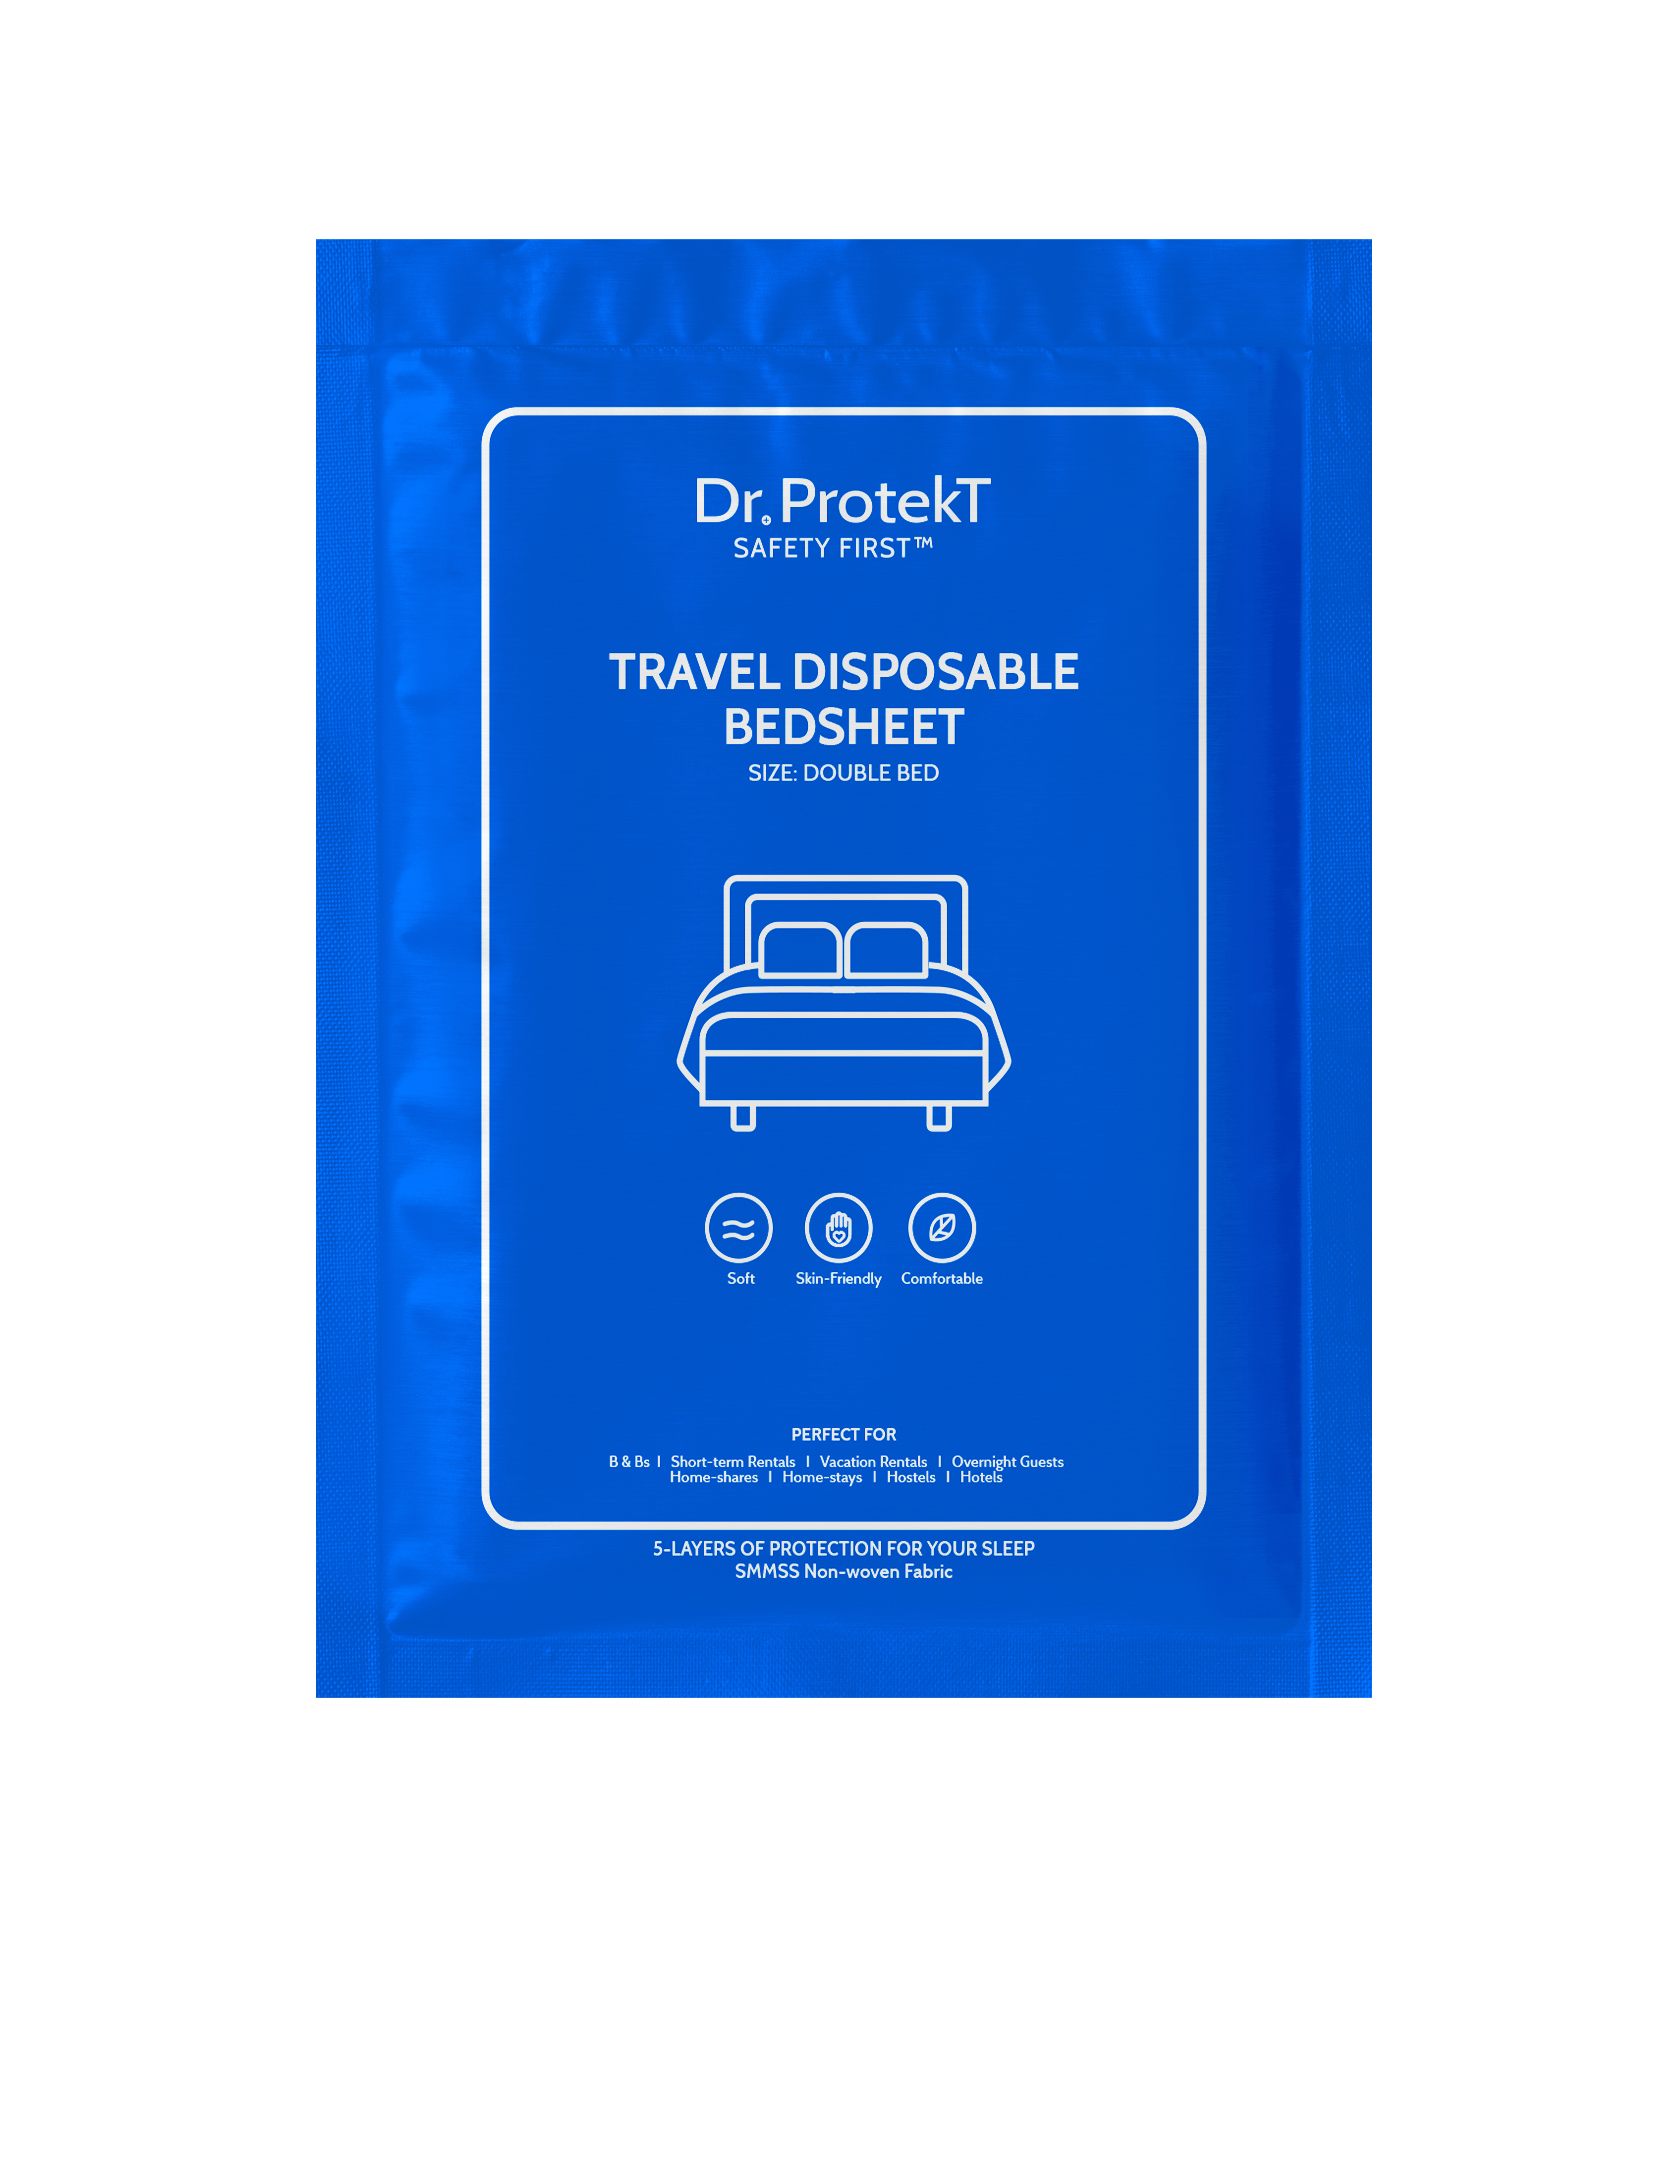 TRAVEL DISPOSABLE BED SHEET